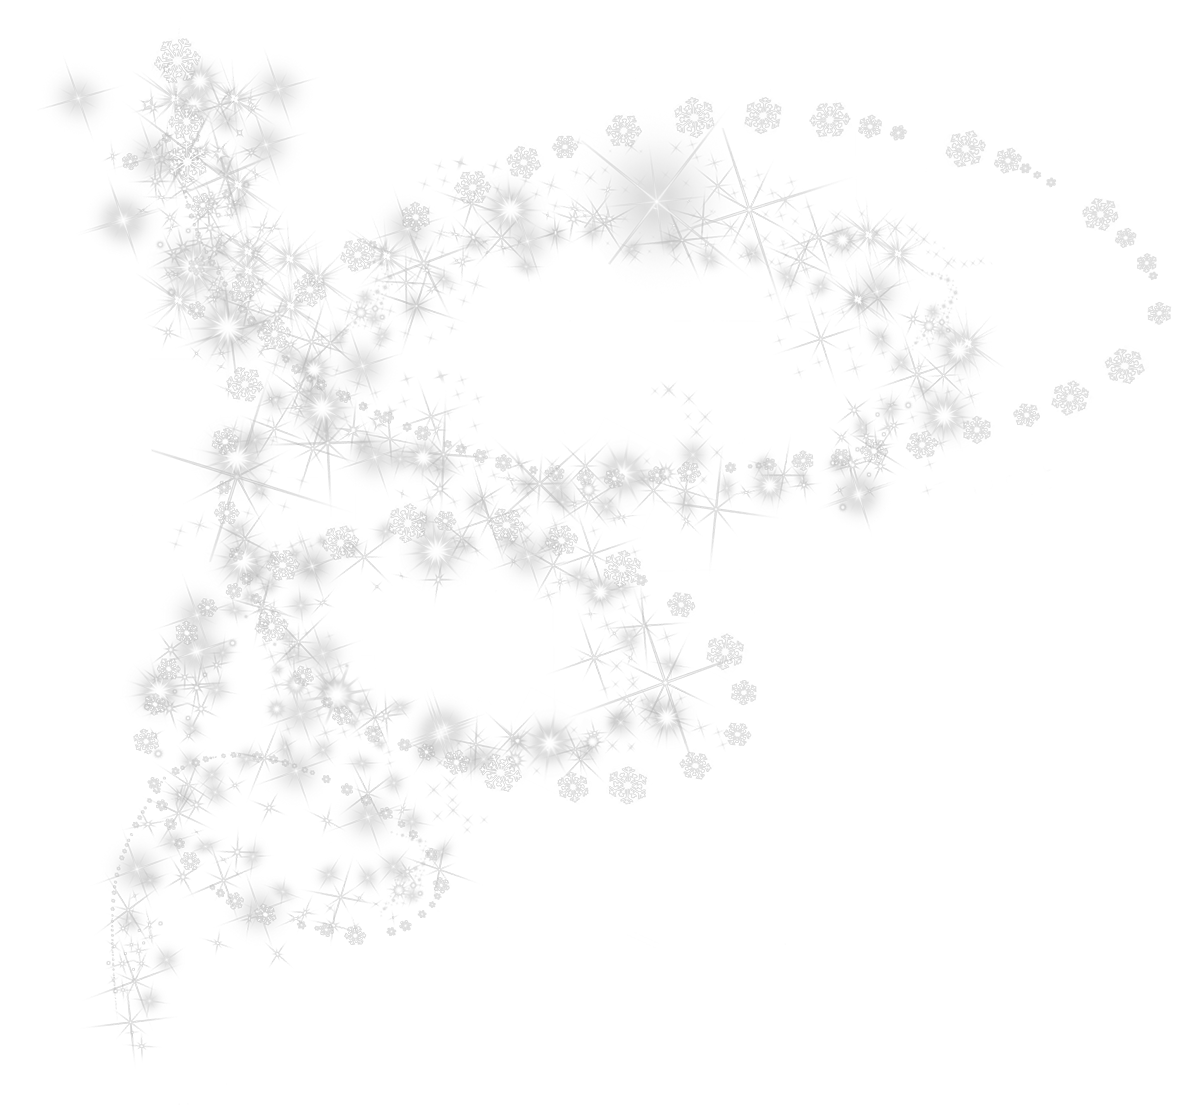 White snowflake clipart free image freeuse stock Snowflakes Transparent PNG Pictures - Free Icons and PNG Backgrounds image freeuse stock